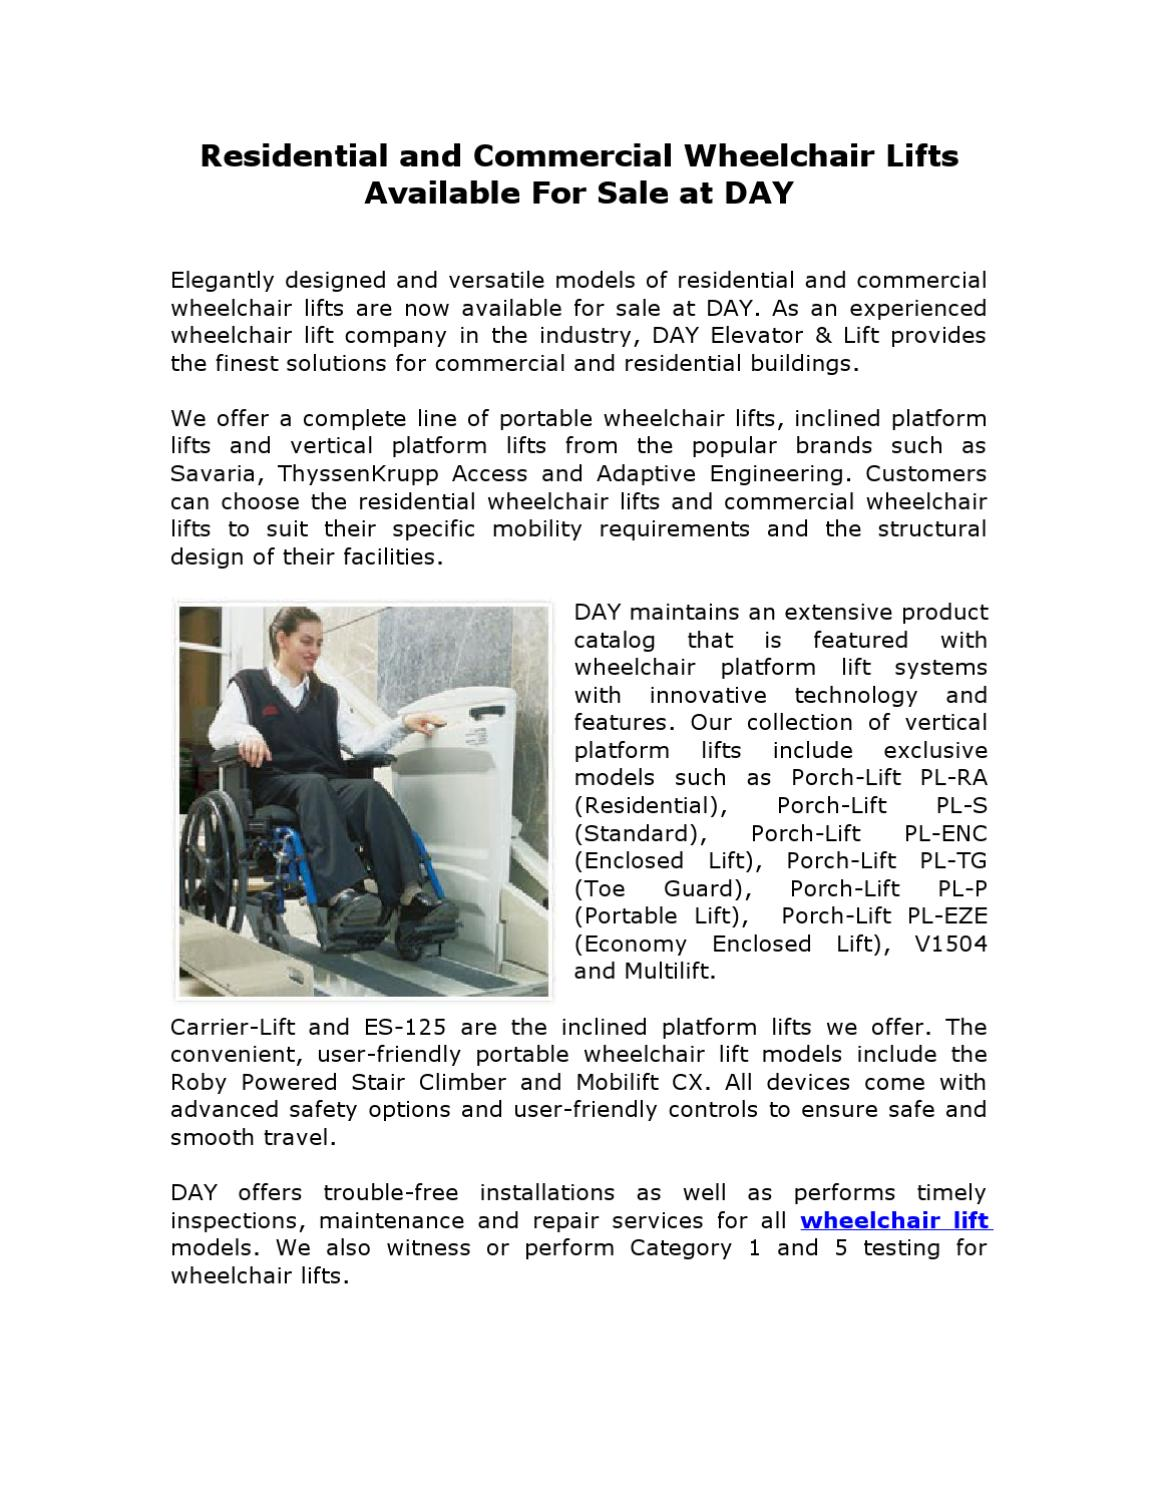 Residential and Commercial Wheelchair Lifts Available For